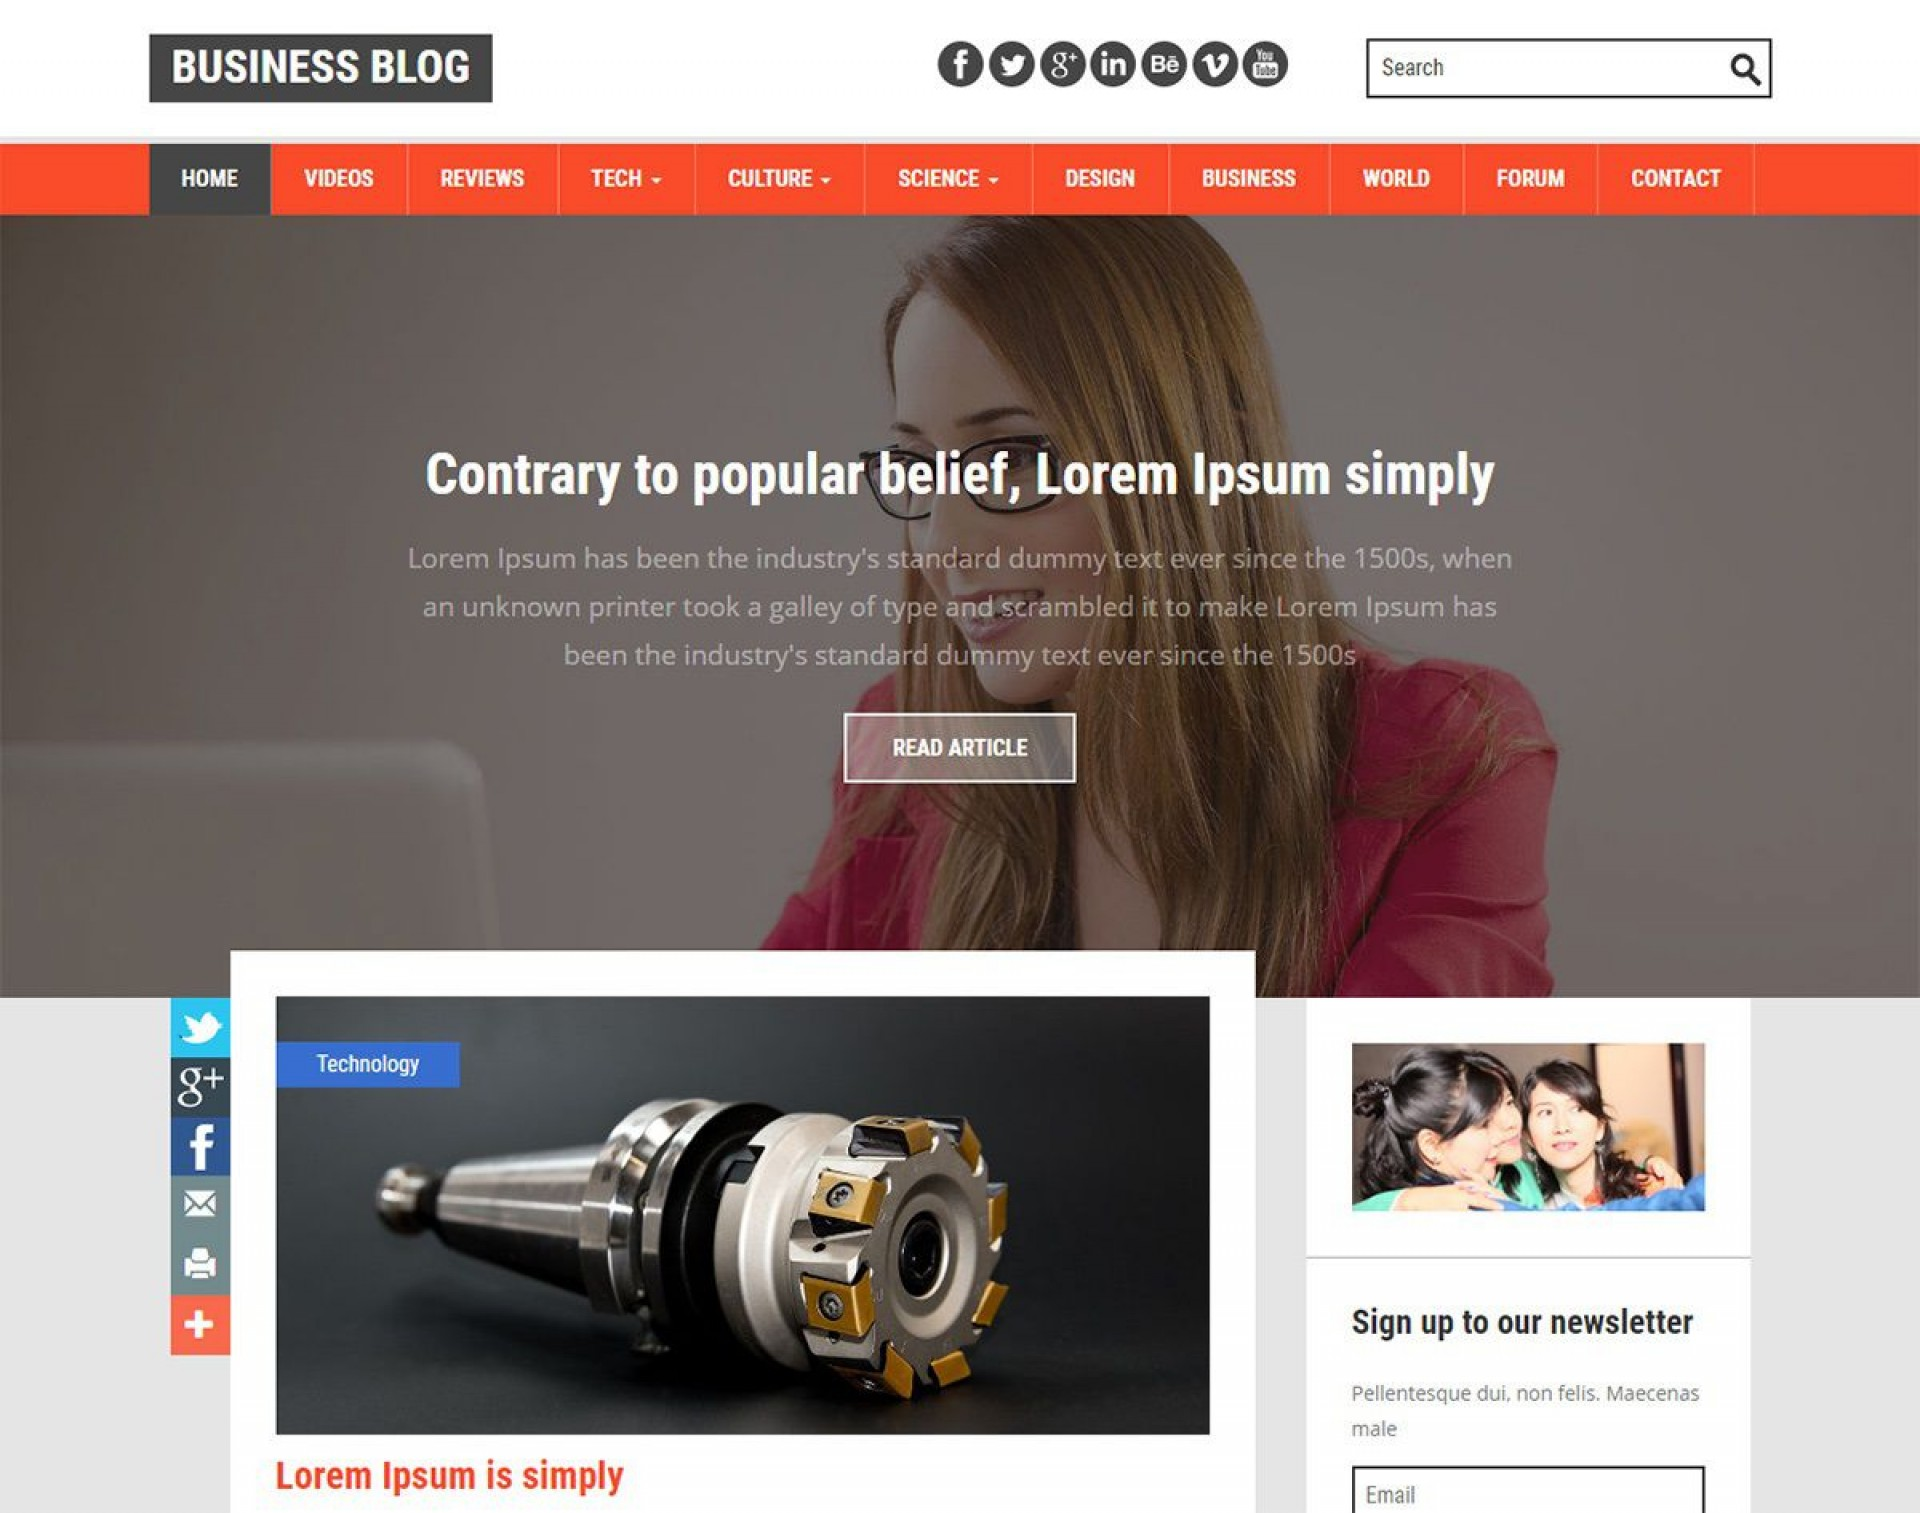 004 Excellent Top Free Responsive Blogger Template Sample  Templates Best For Education 2020 20191920